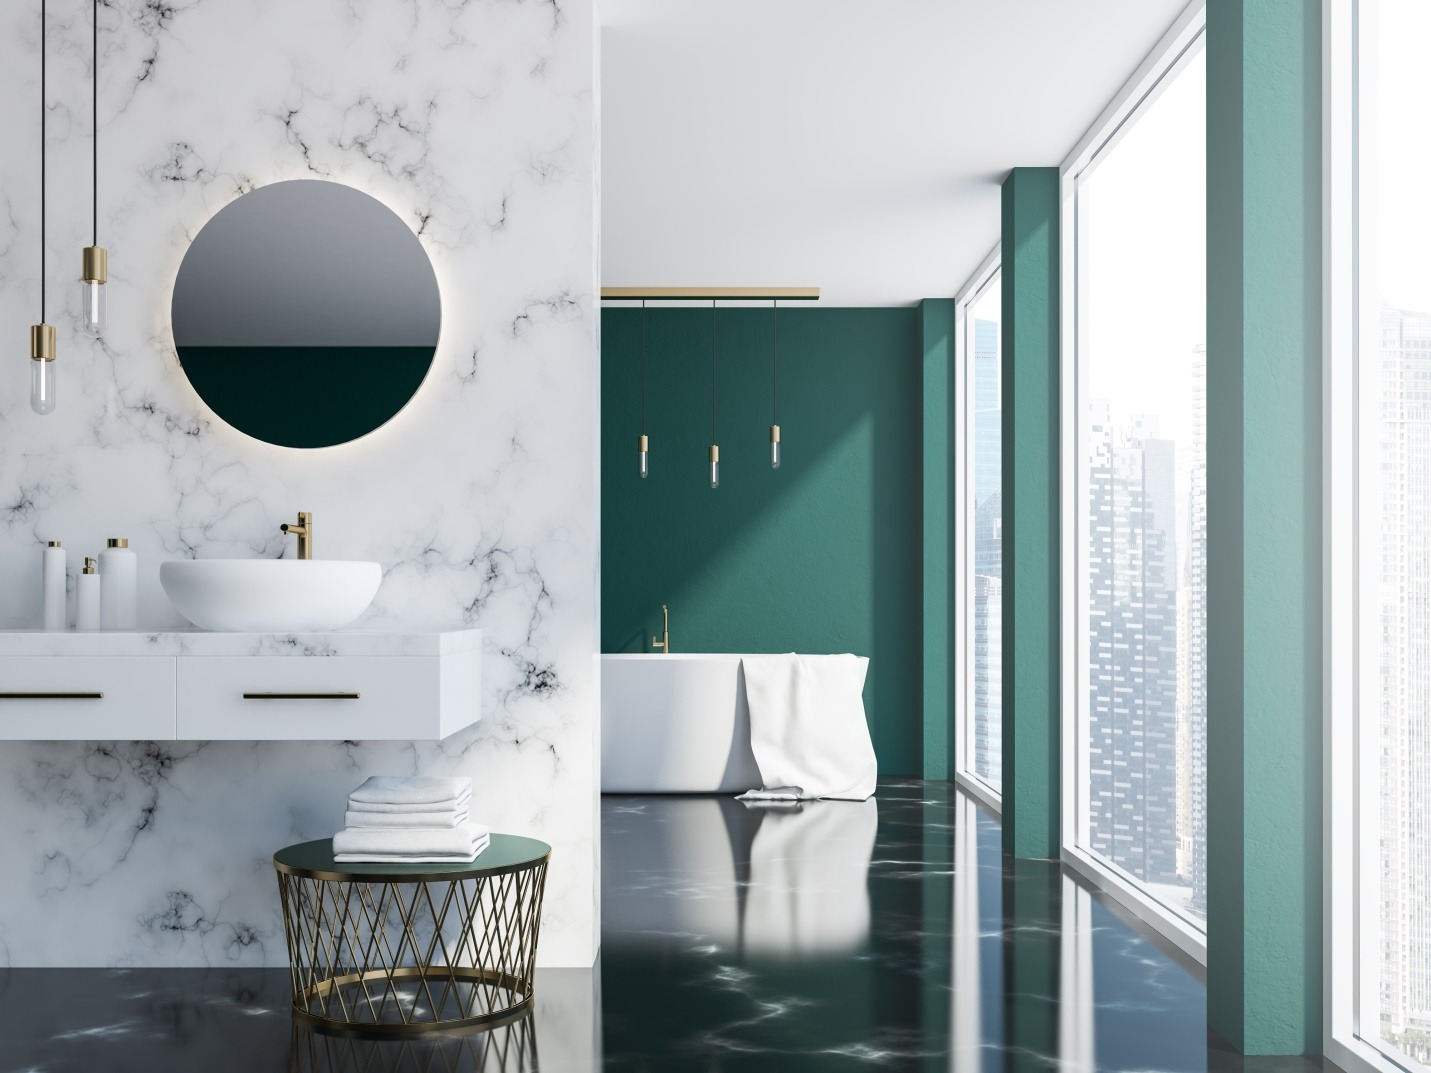 White marble and dark green loft bathroom with a sink and a round mirror